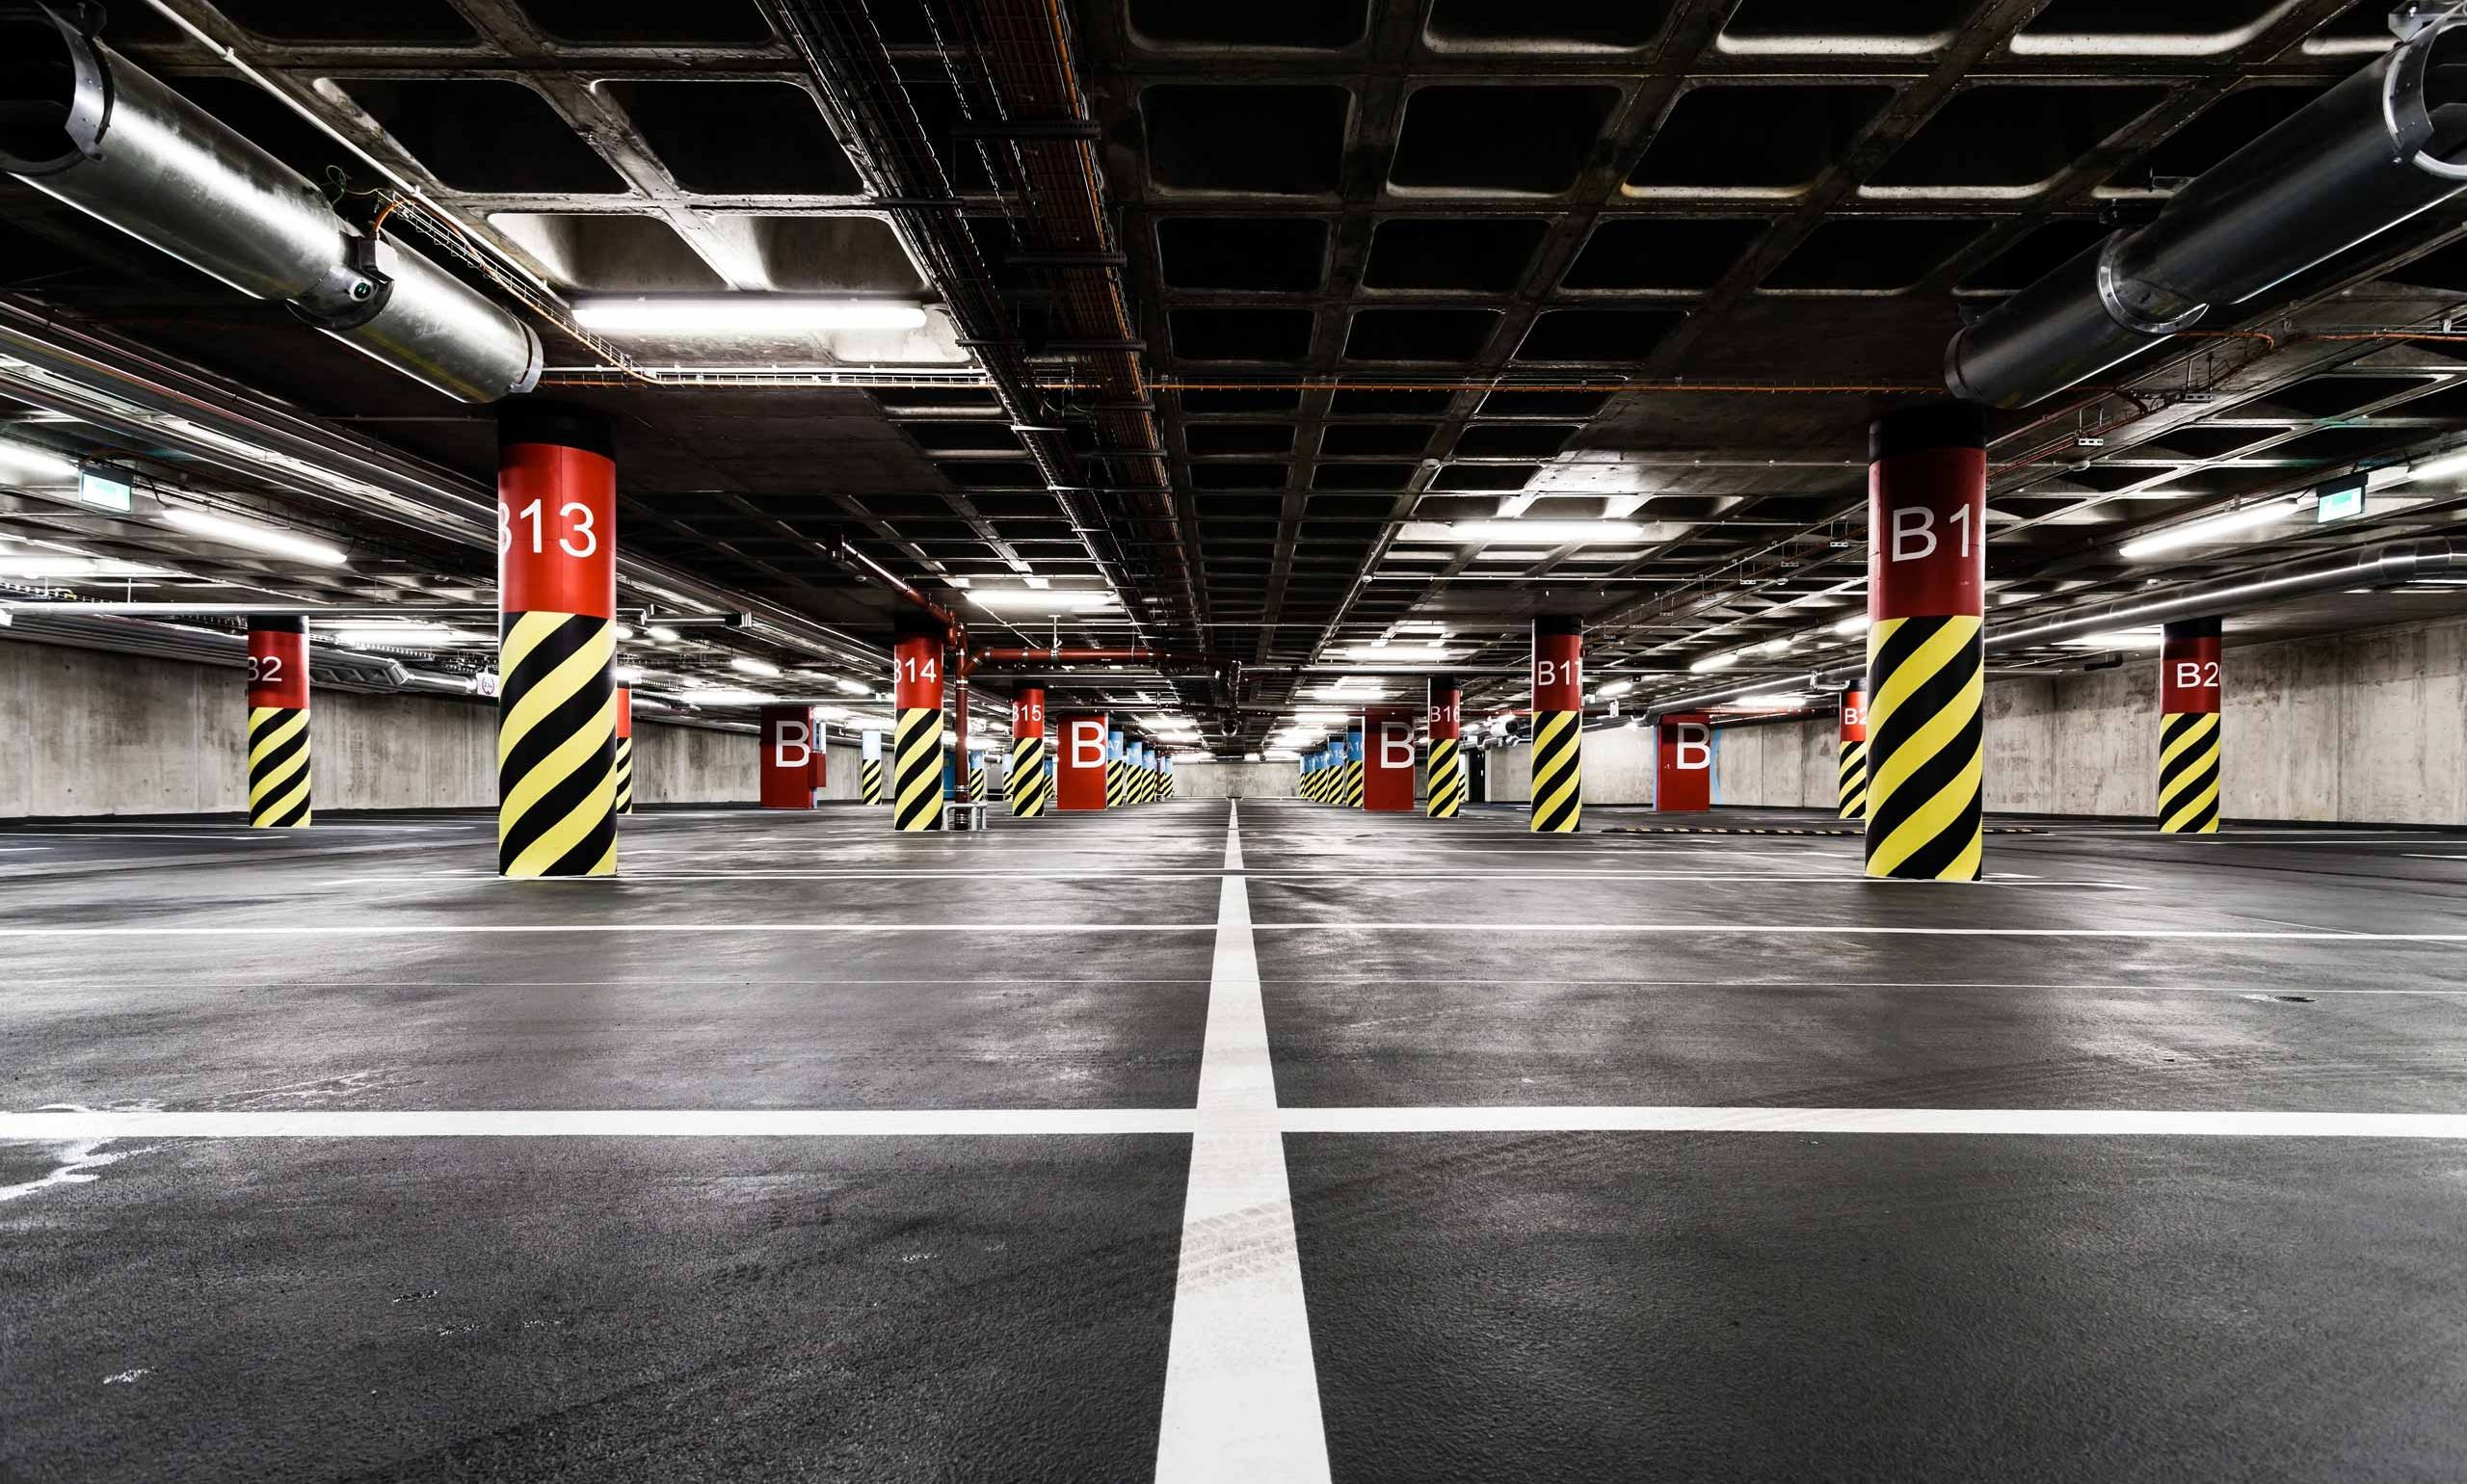 CLEANING OF EXTERIOR AND INTERIOR PARKING